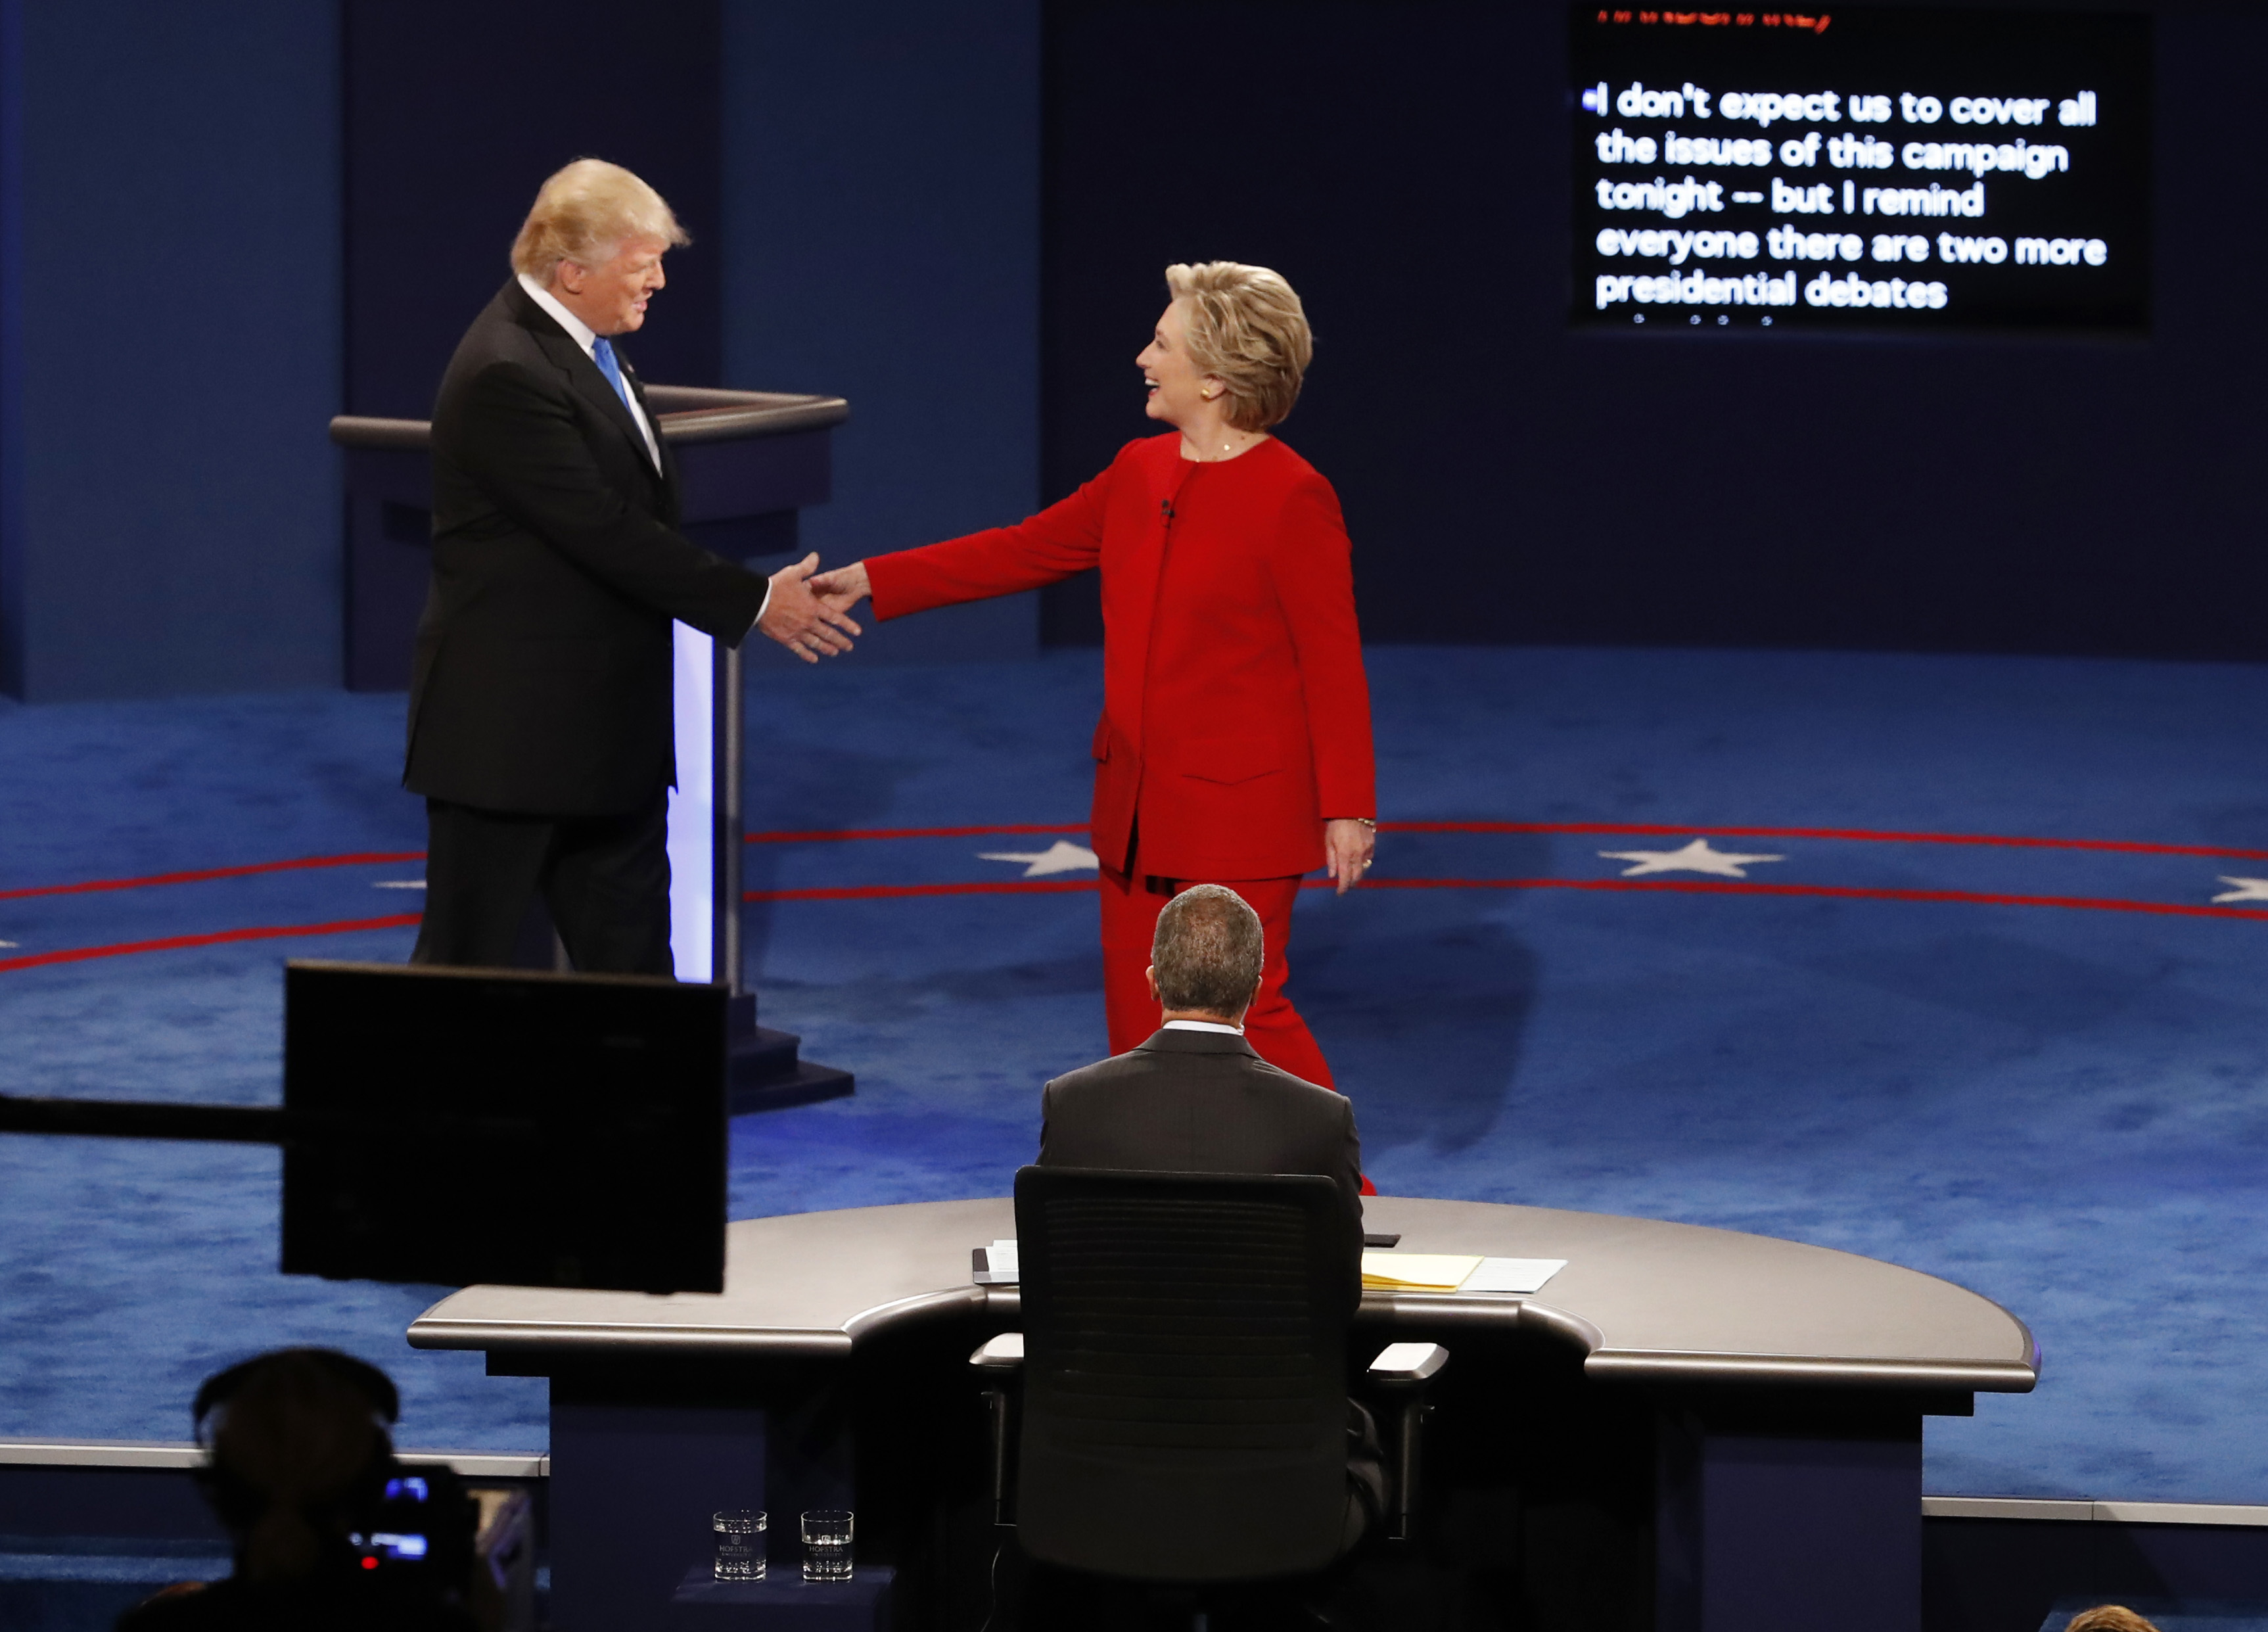 Top Moments From The First Presidential Debate